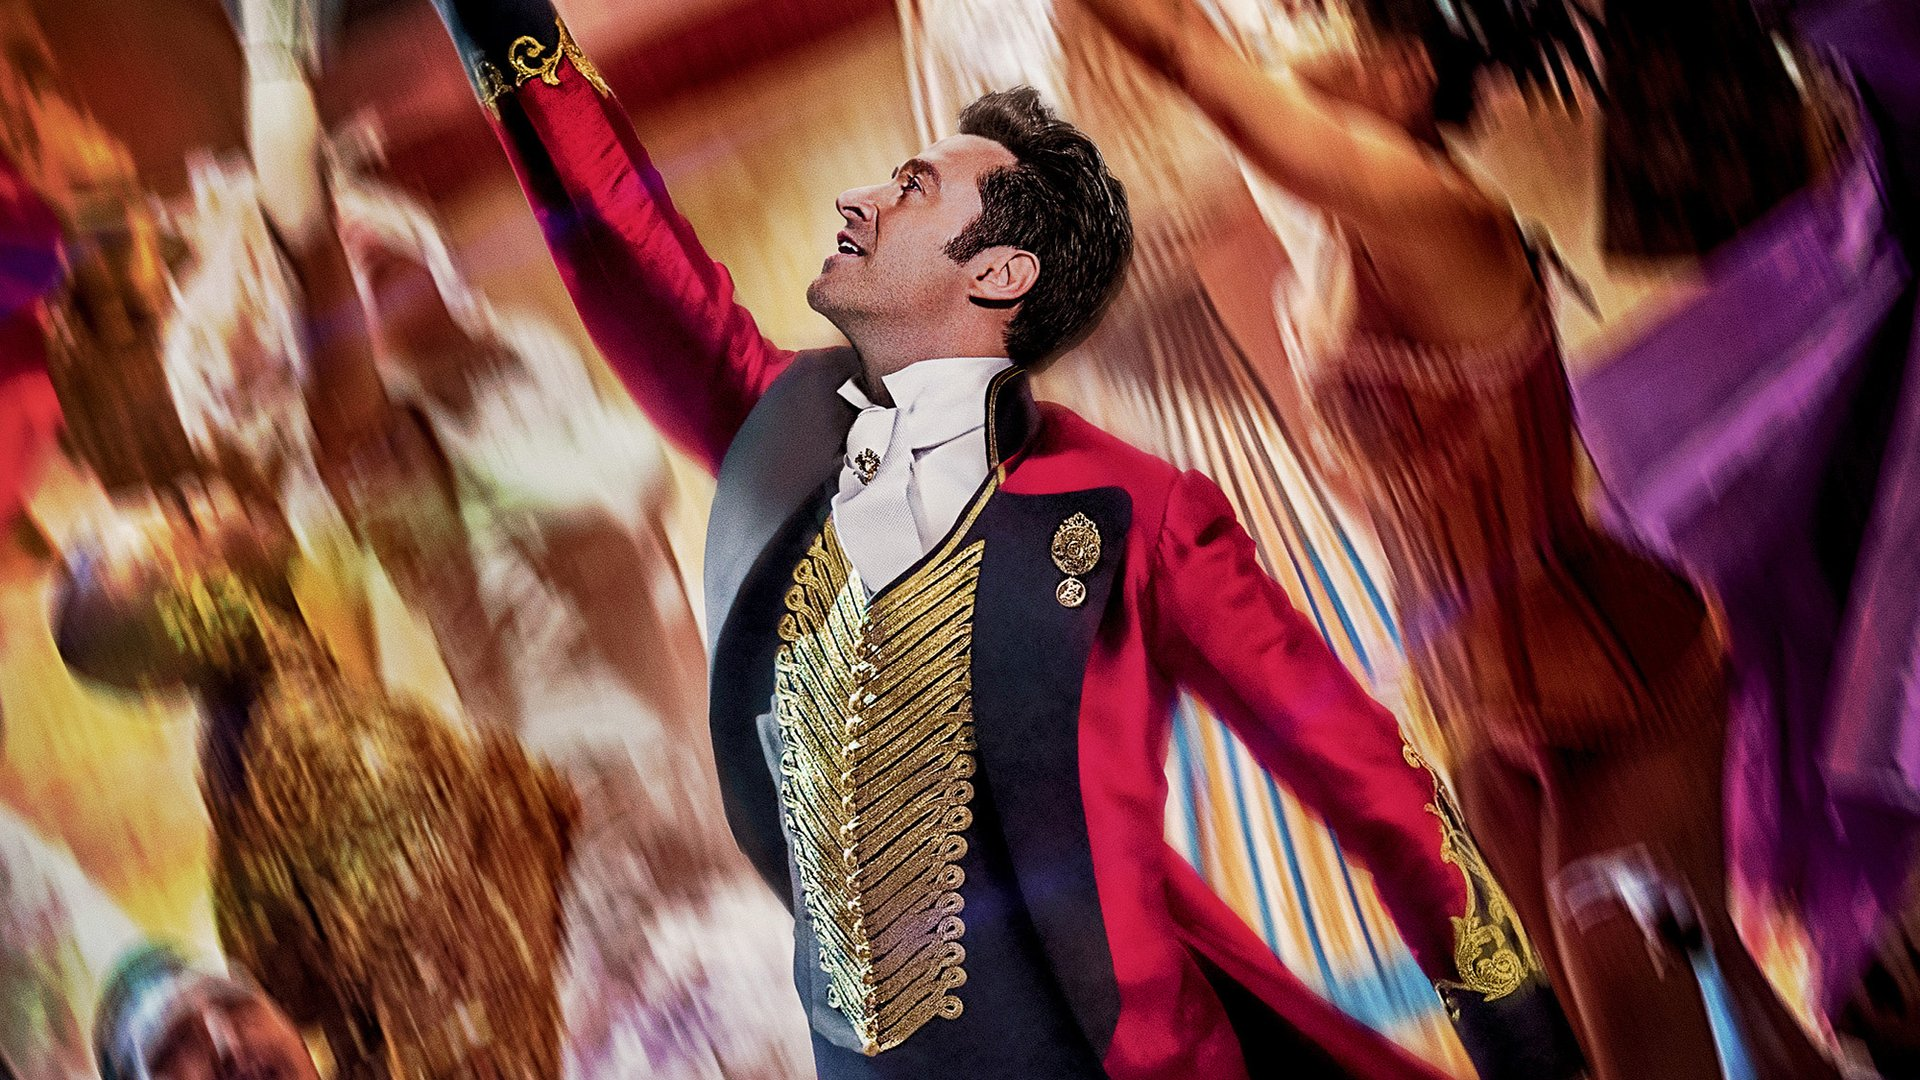 8 The Greatest Showman Hd Wallpapers Background Images